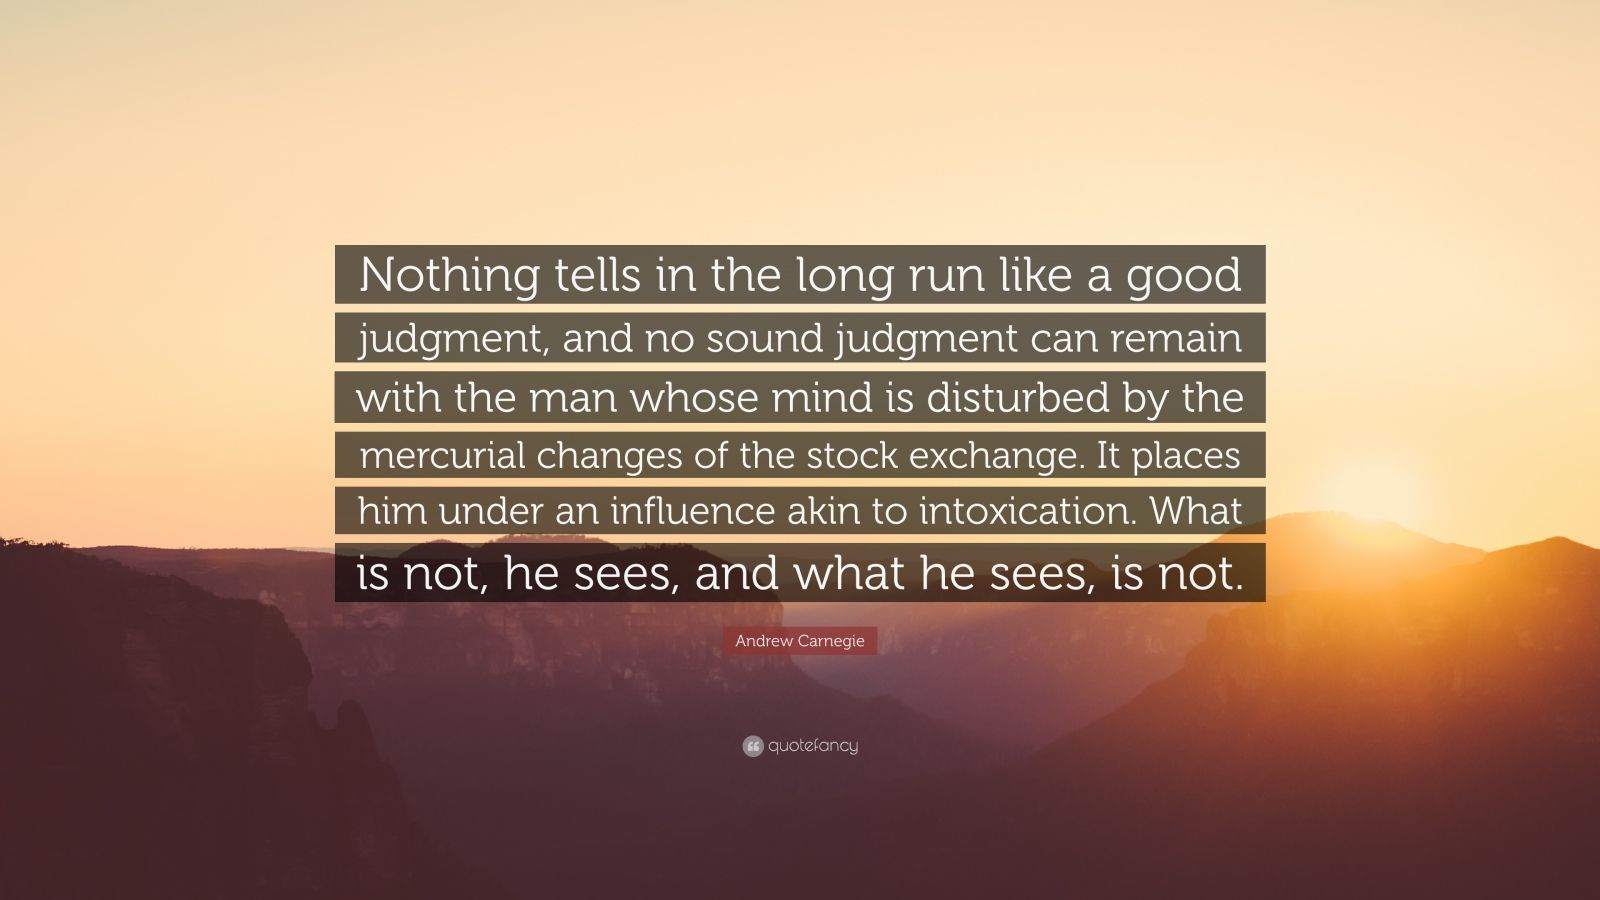 """Andrew Carnegie Quote: """"Nothing tells in the long run like a good judgment, and no sound judgment can remain with the man whose mind is disturbed by the mercurial changes of the stock exchange. It places him under an influence akin to intoxication. What is not, he sees, and what he sees, is not."""""""